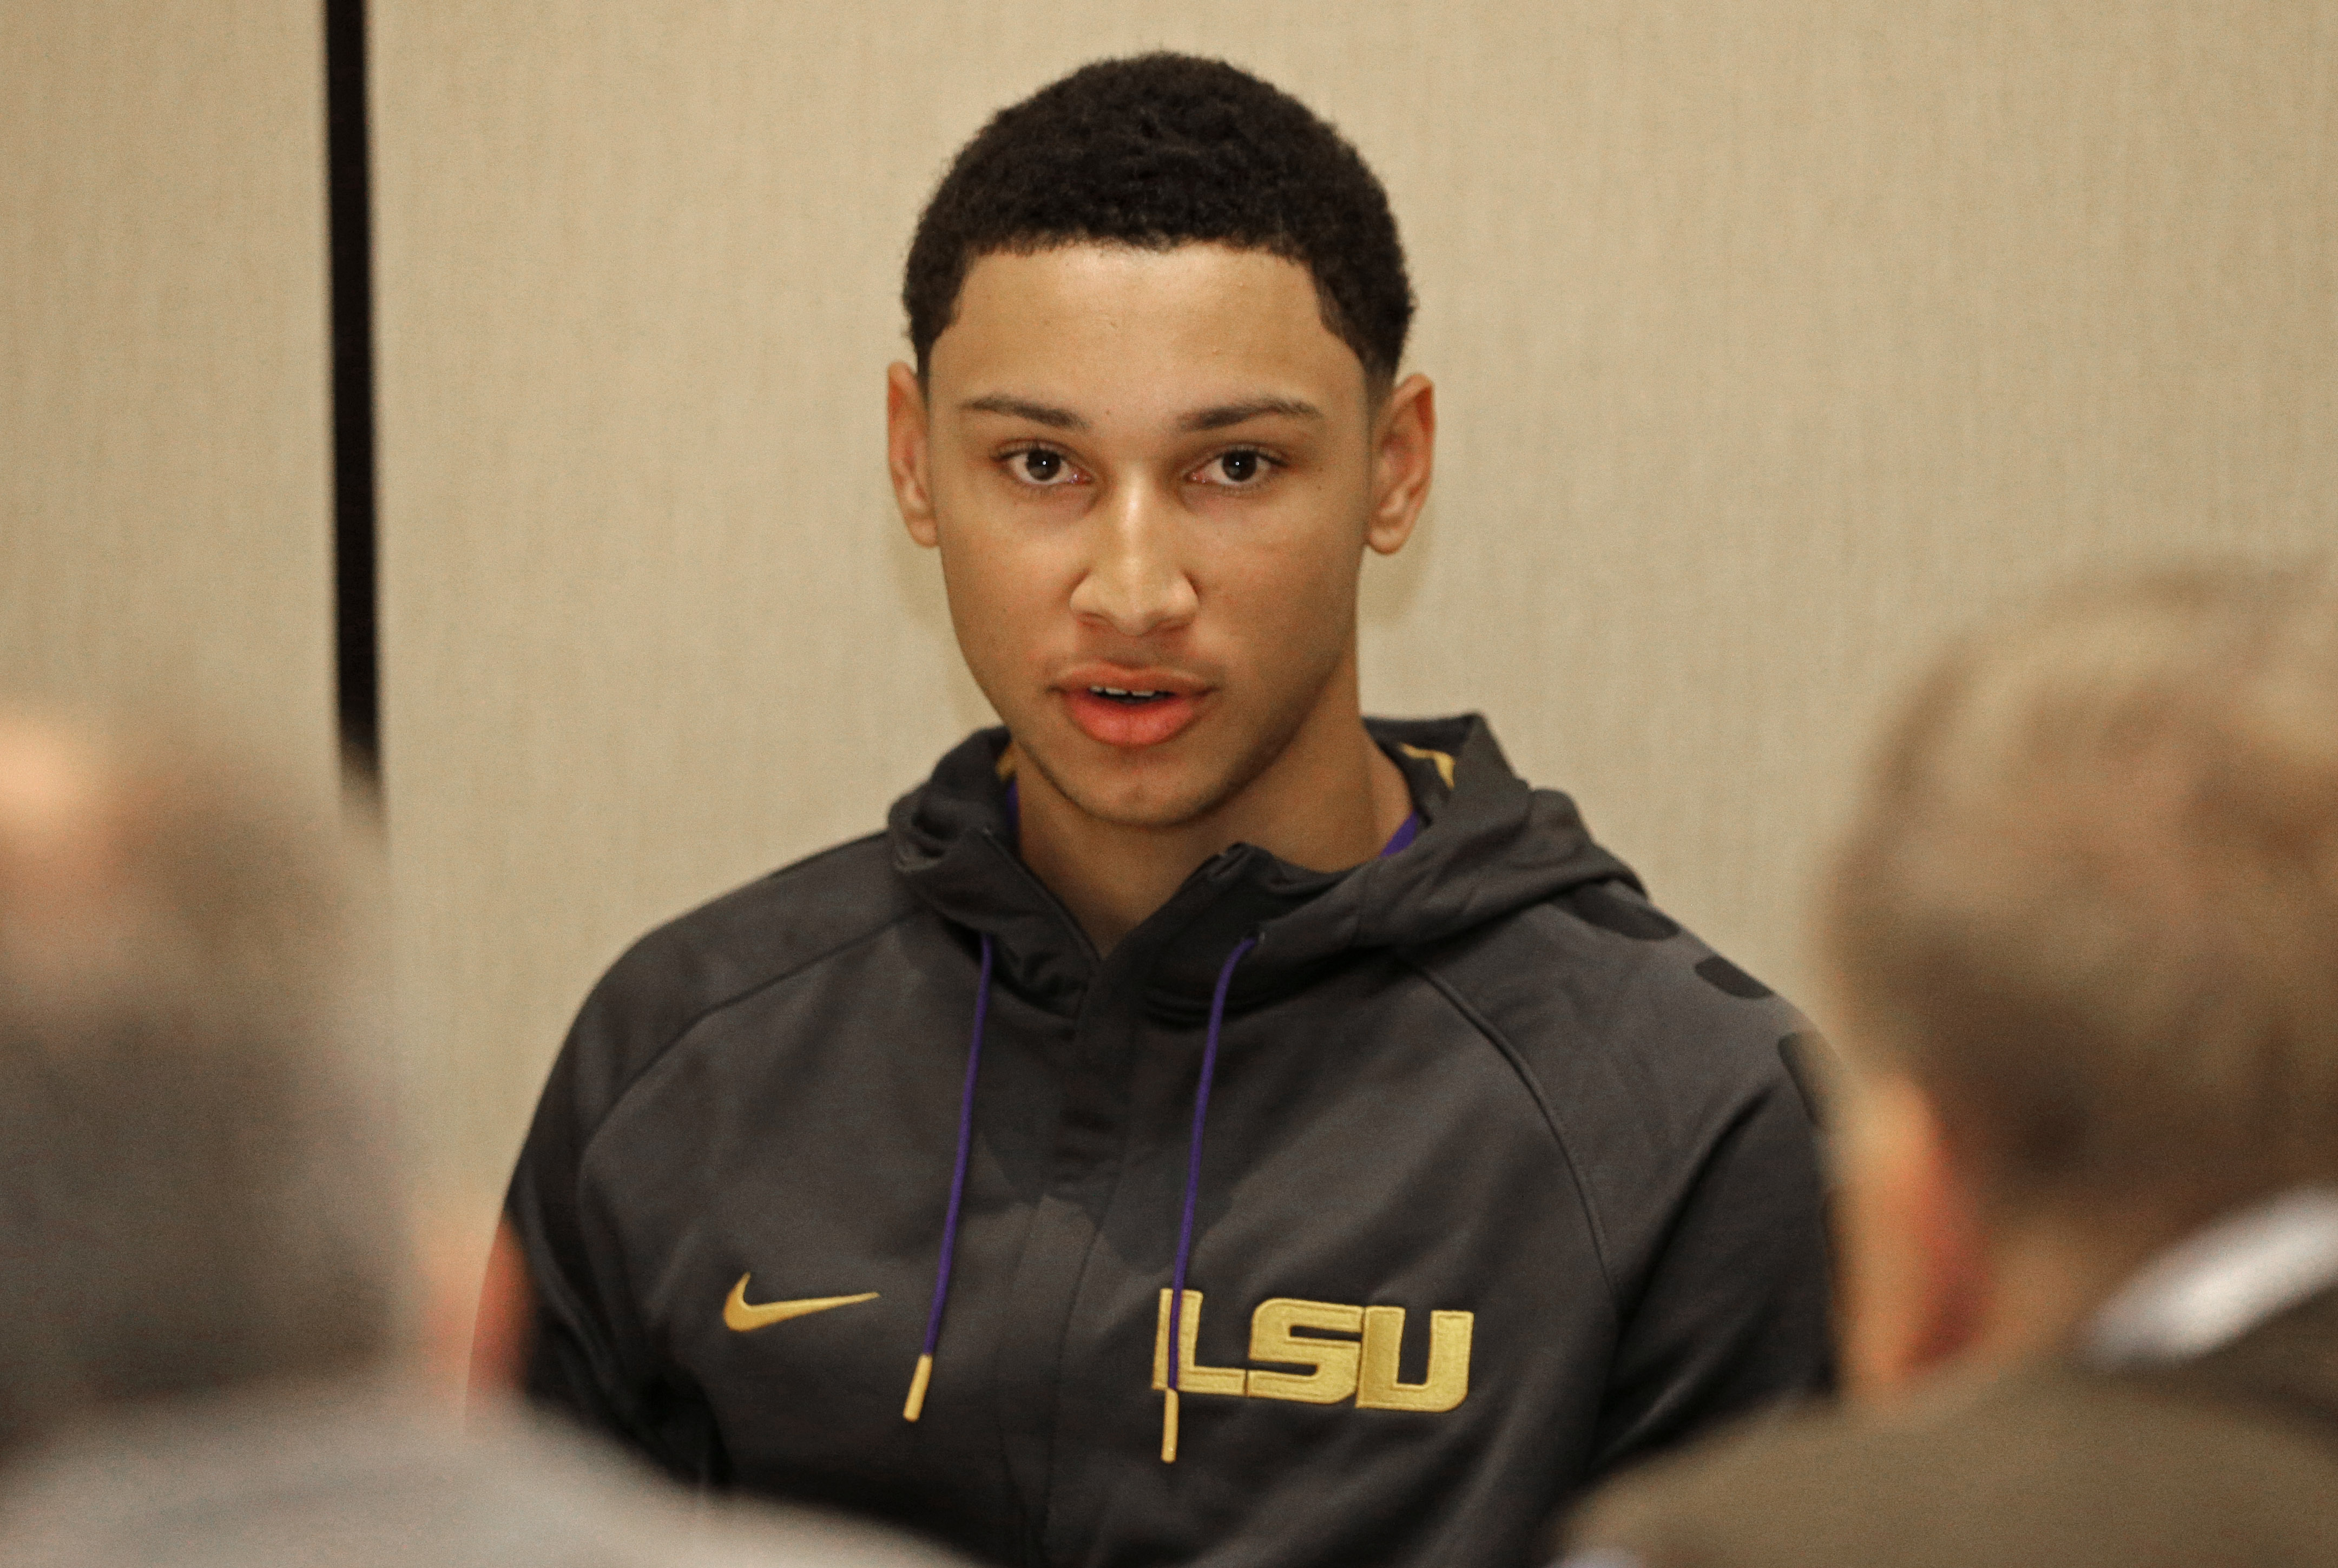 FILE - In this Oct. 21, 2015, file photo, Louisiana State's Ben Simmons answers a question during the Southeastern Conference men's  NCAA college basketball media day in Charlotte, N.C. The blue bloods have reloaded. New contenders are rising. More talent